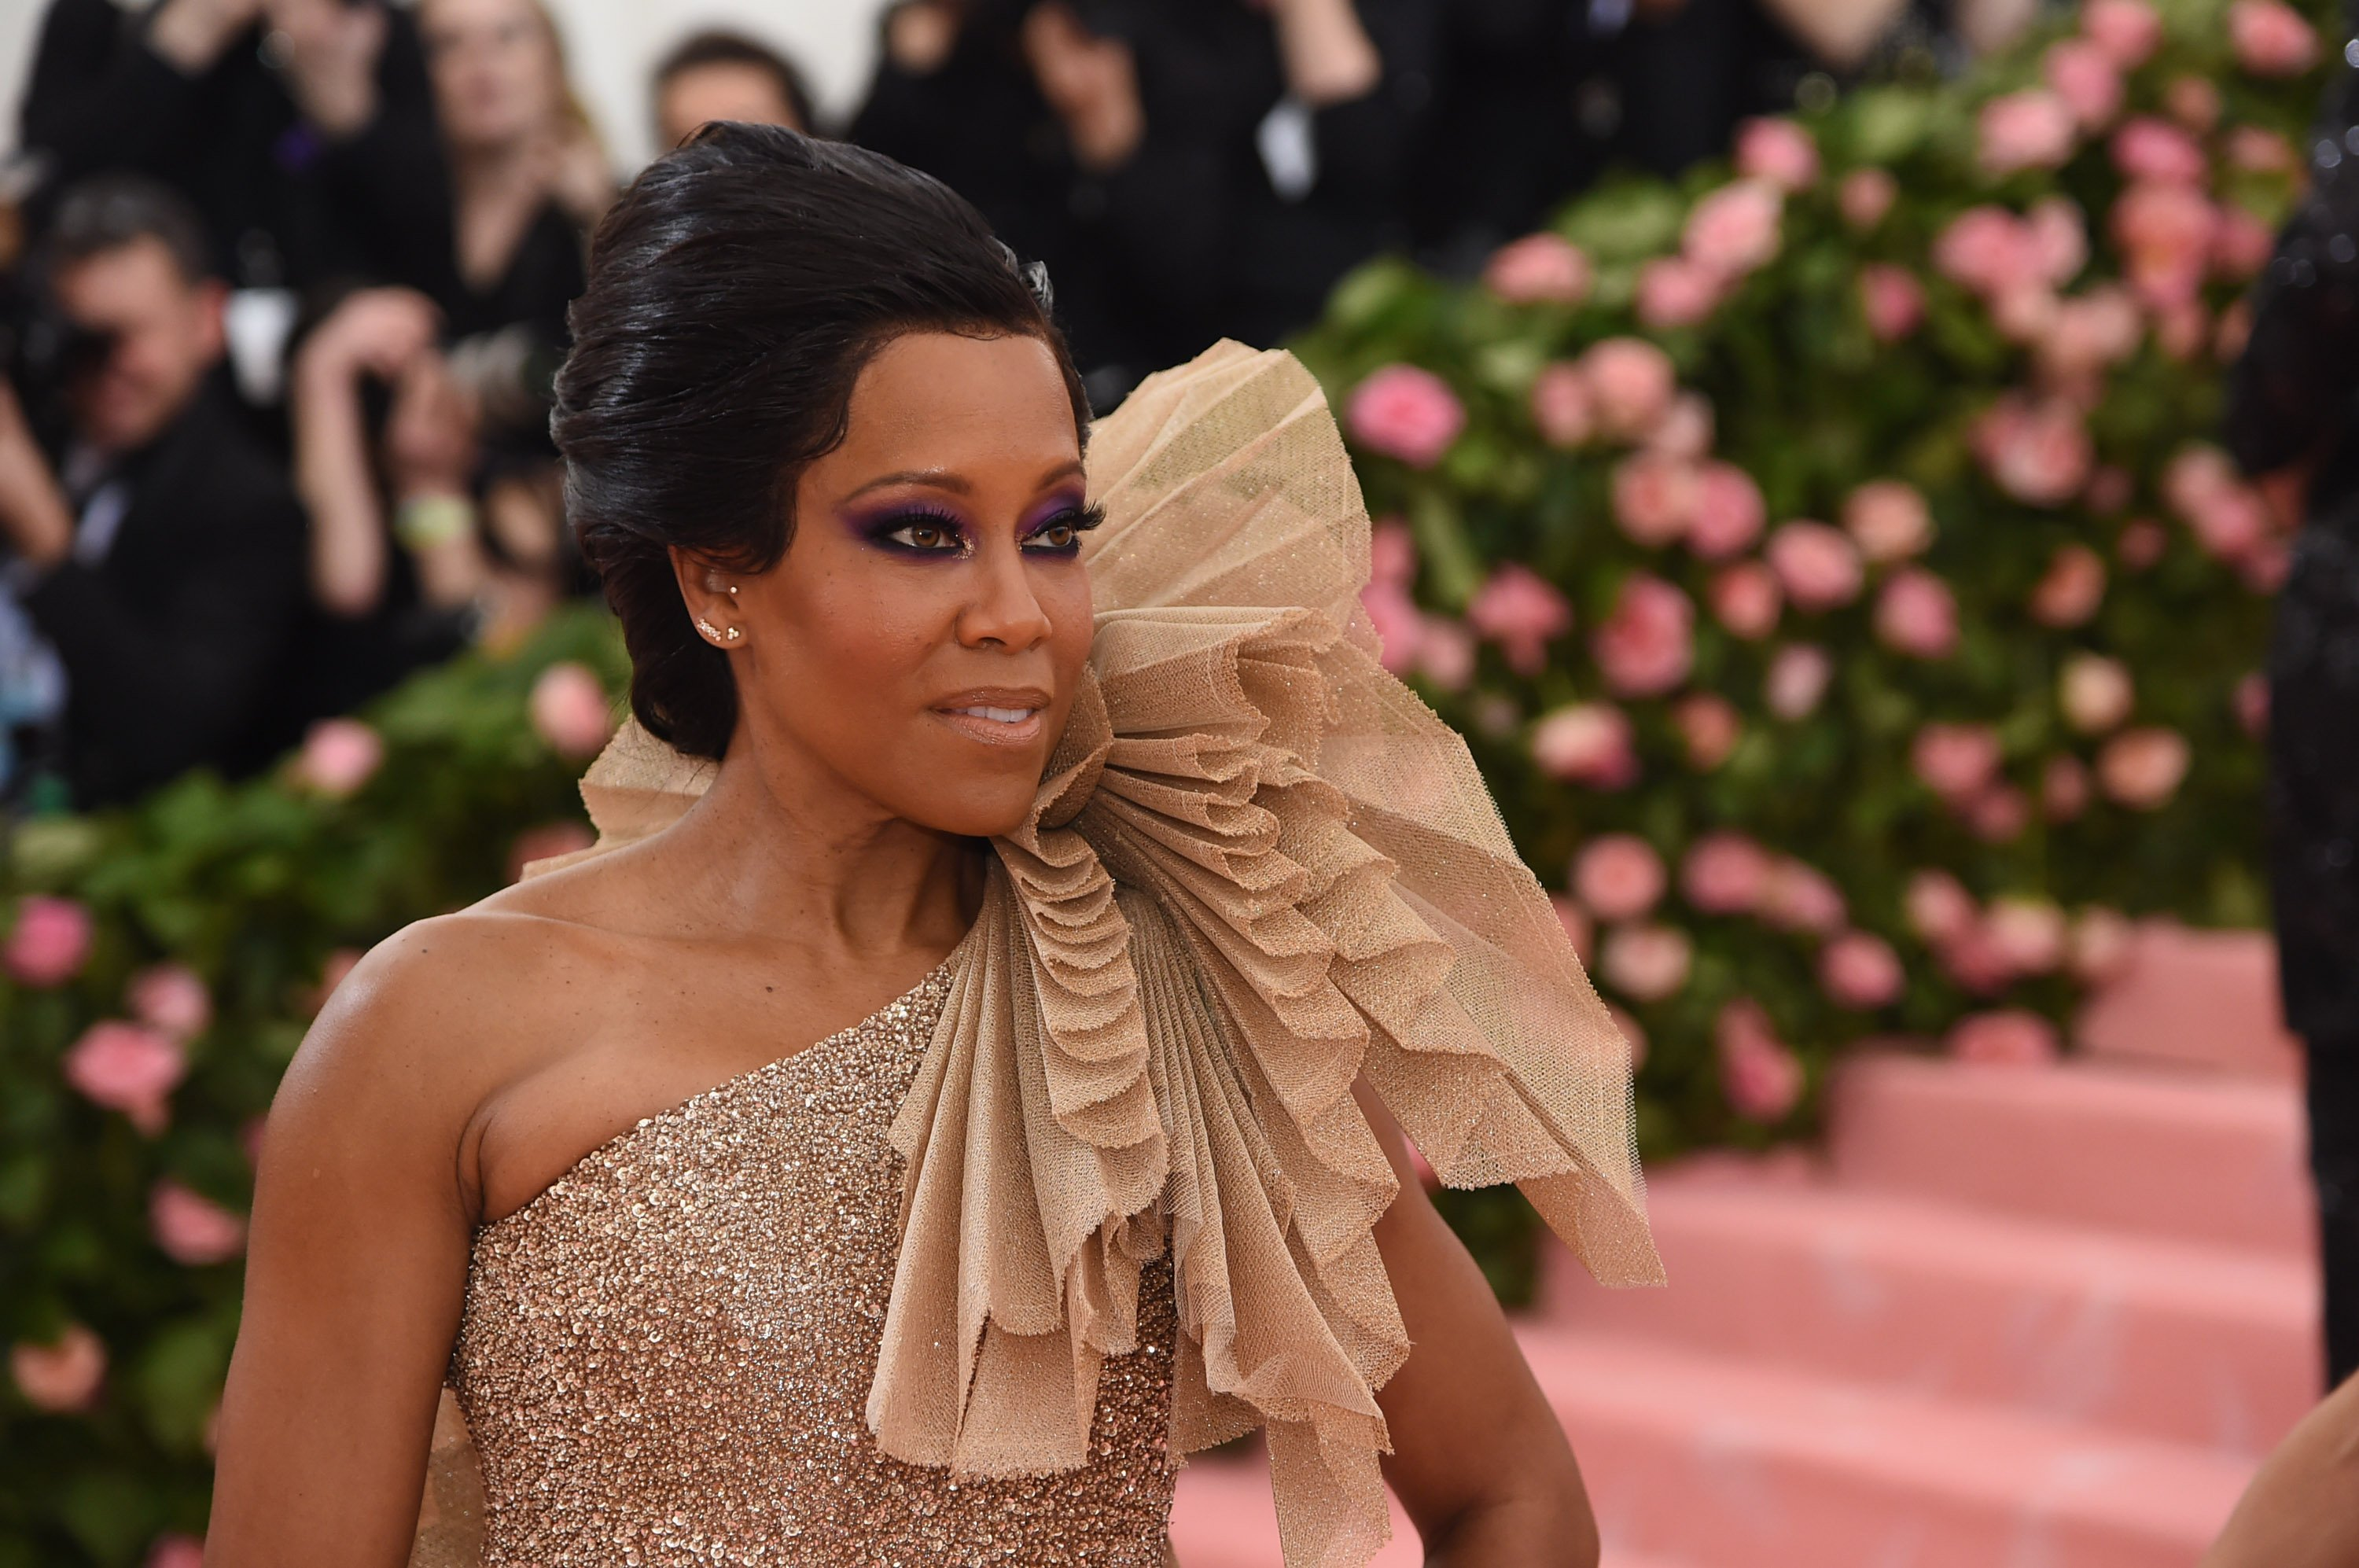 Regina King at the 2019 Met Gala Celebrating Camp at Metropolitan Museum of Art on May 06, 2019 in New York City. | Source: Getty Images